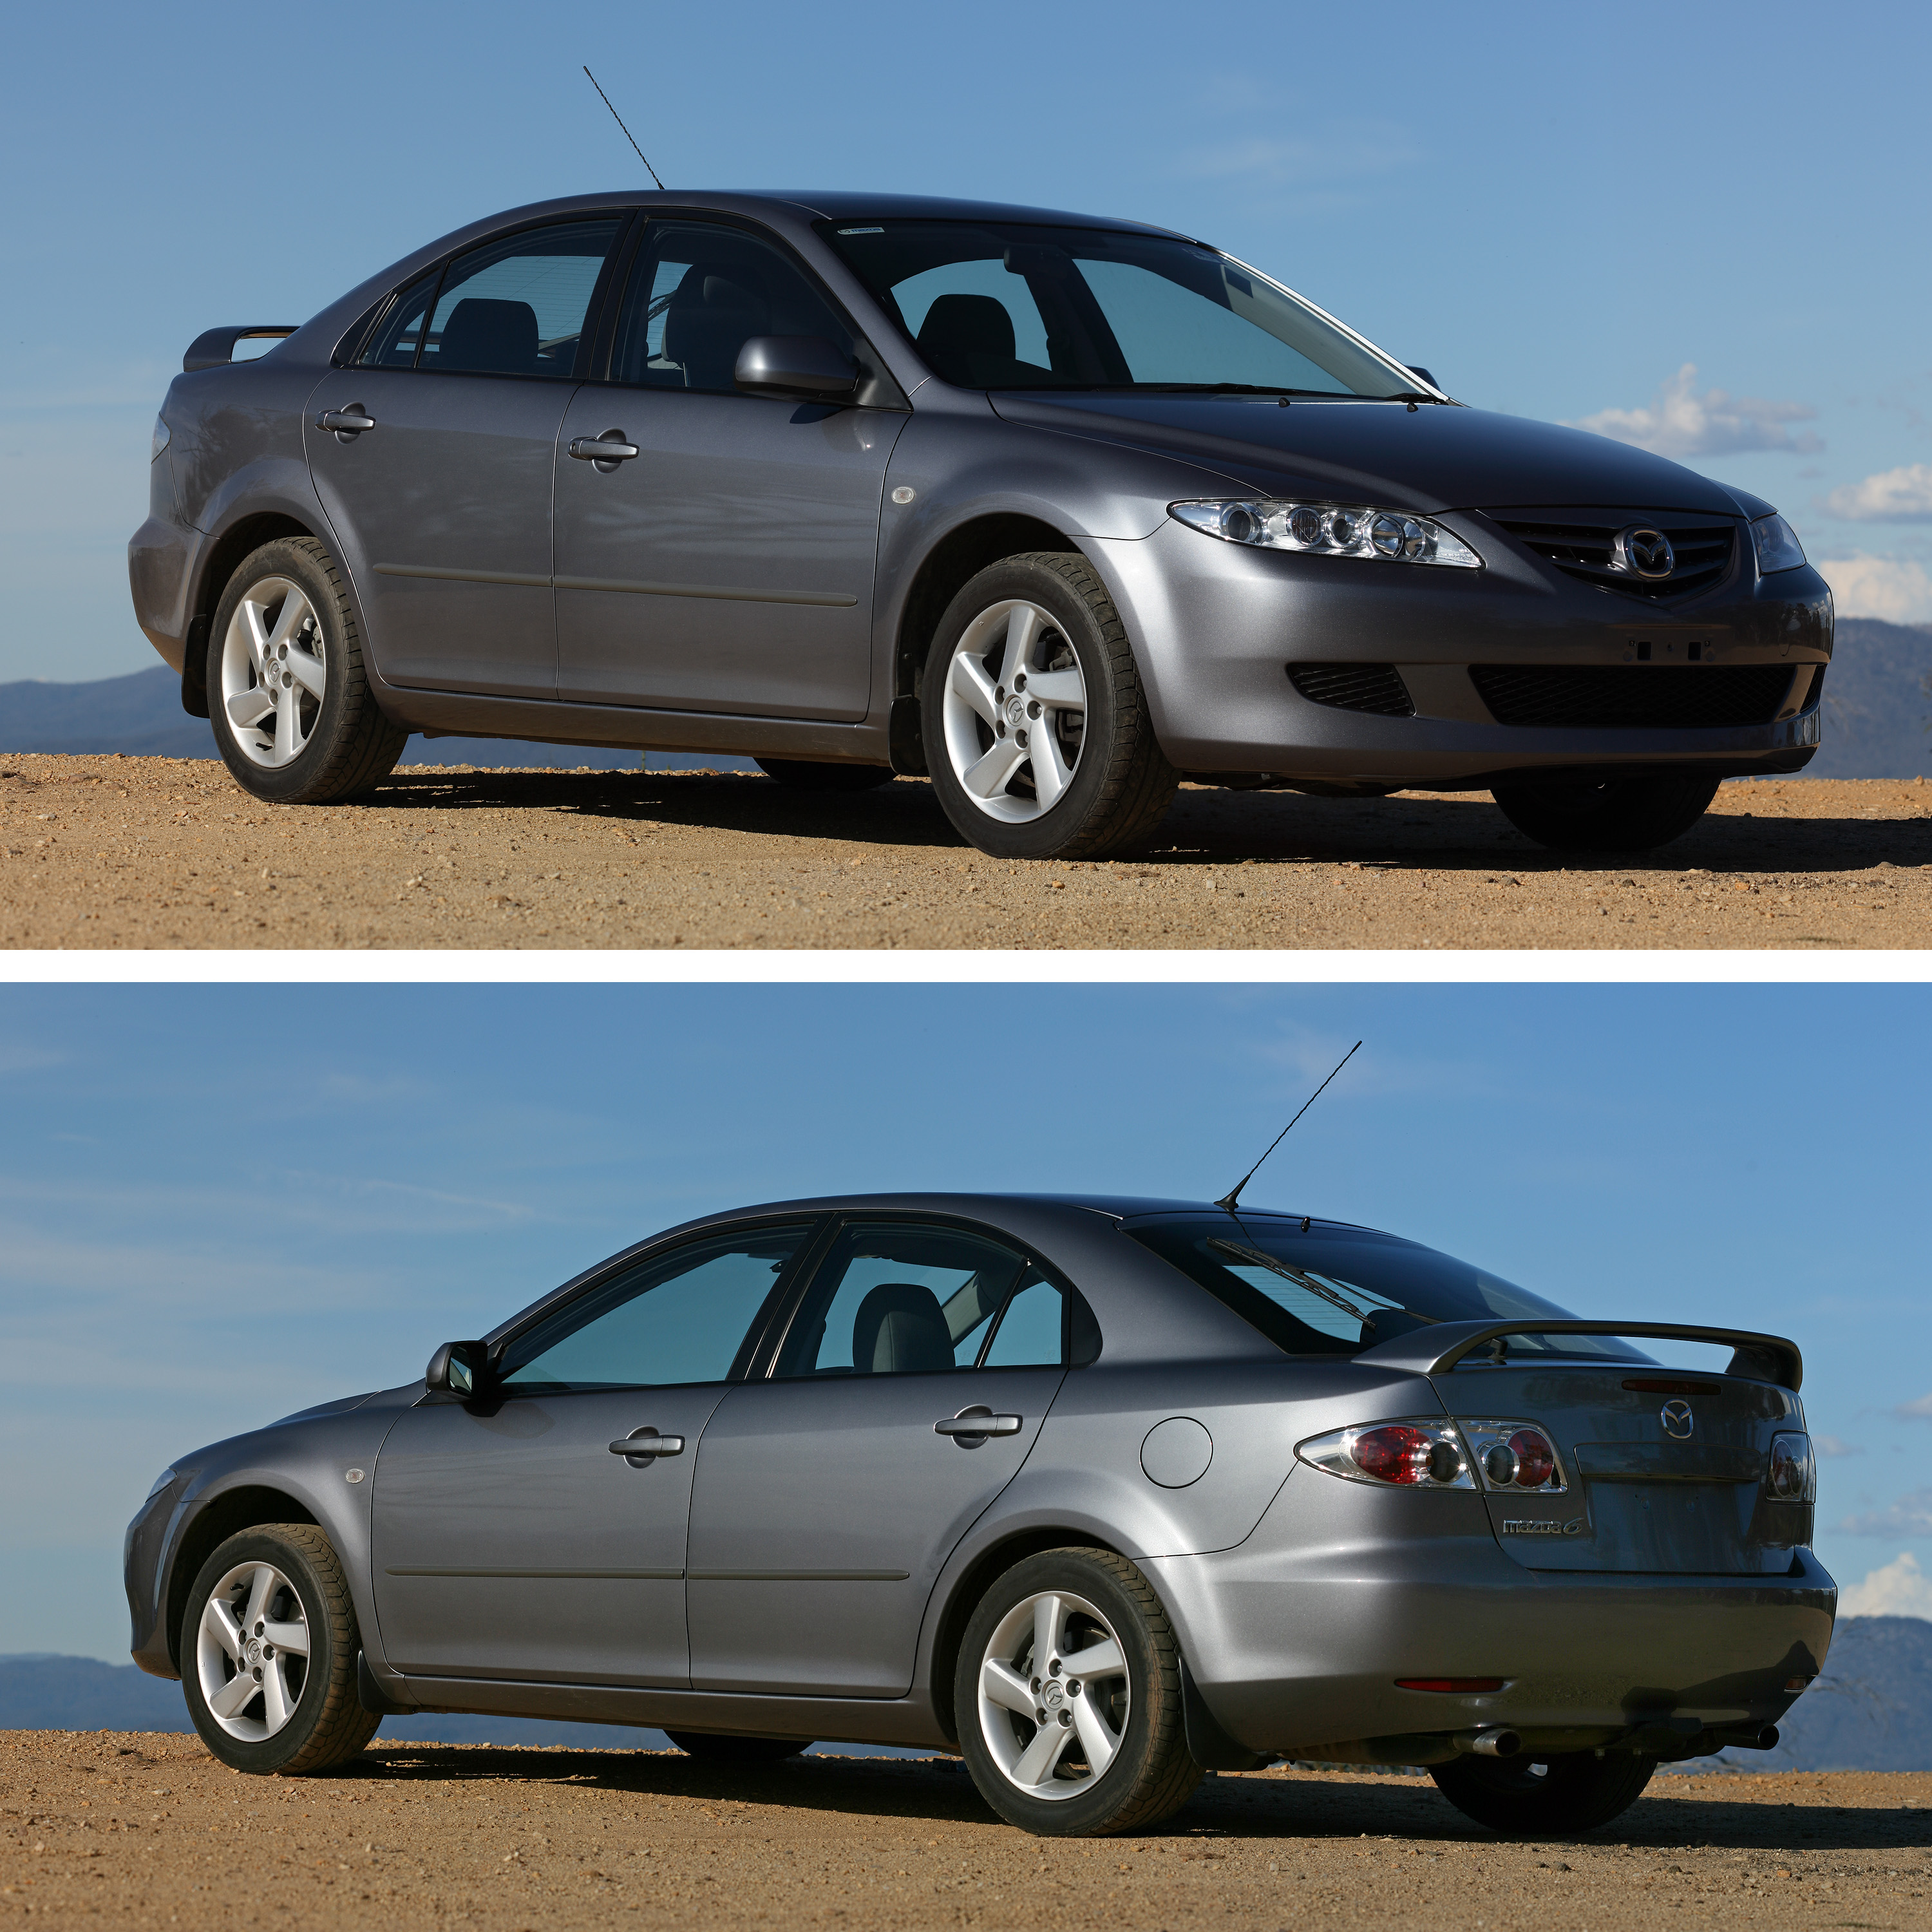 2003_Mazda6_GG_Classic_Hatch_Front_%26_R